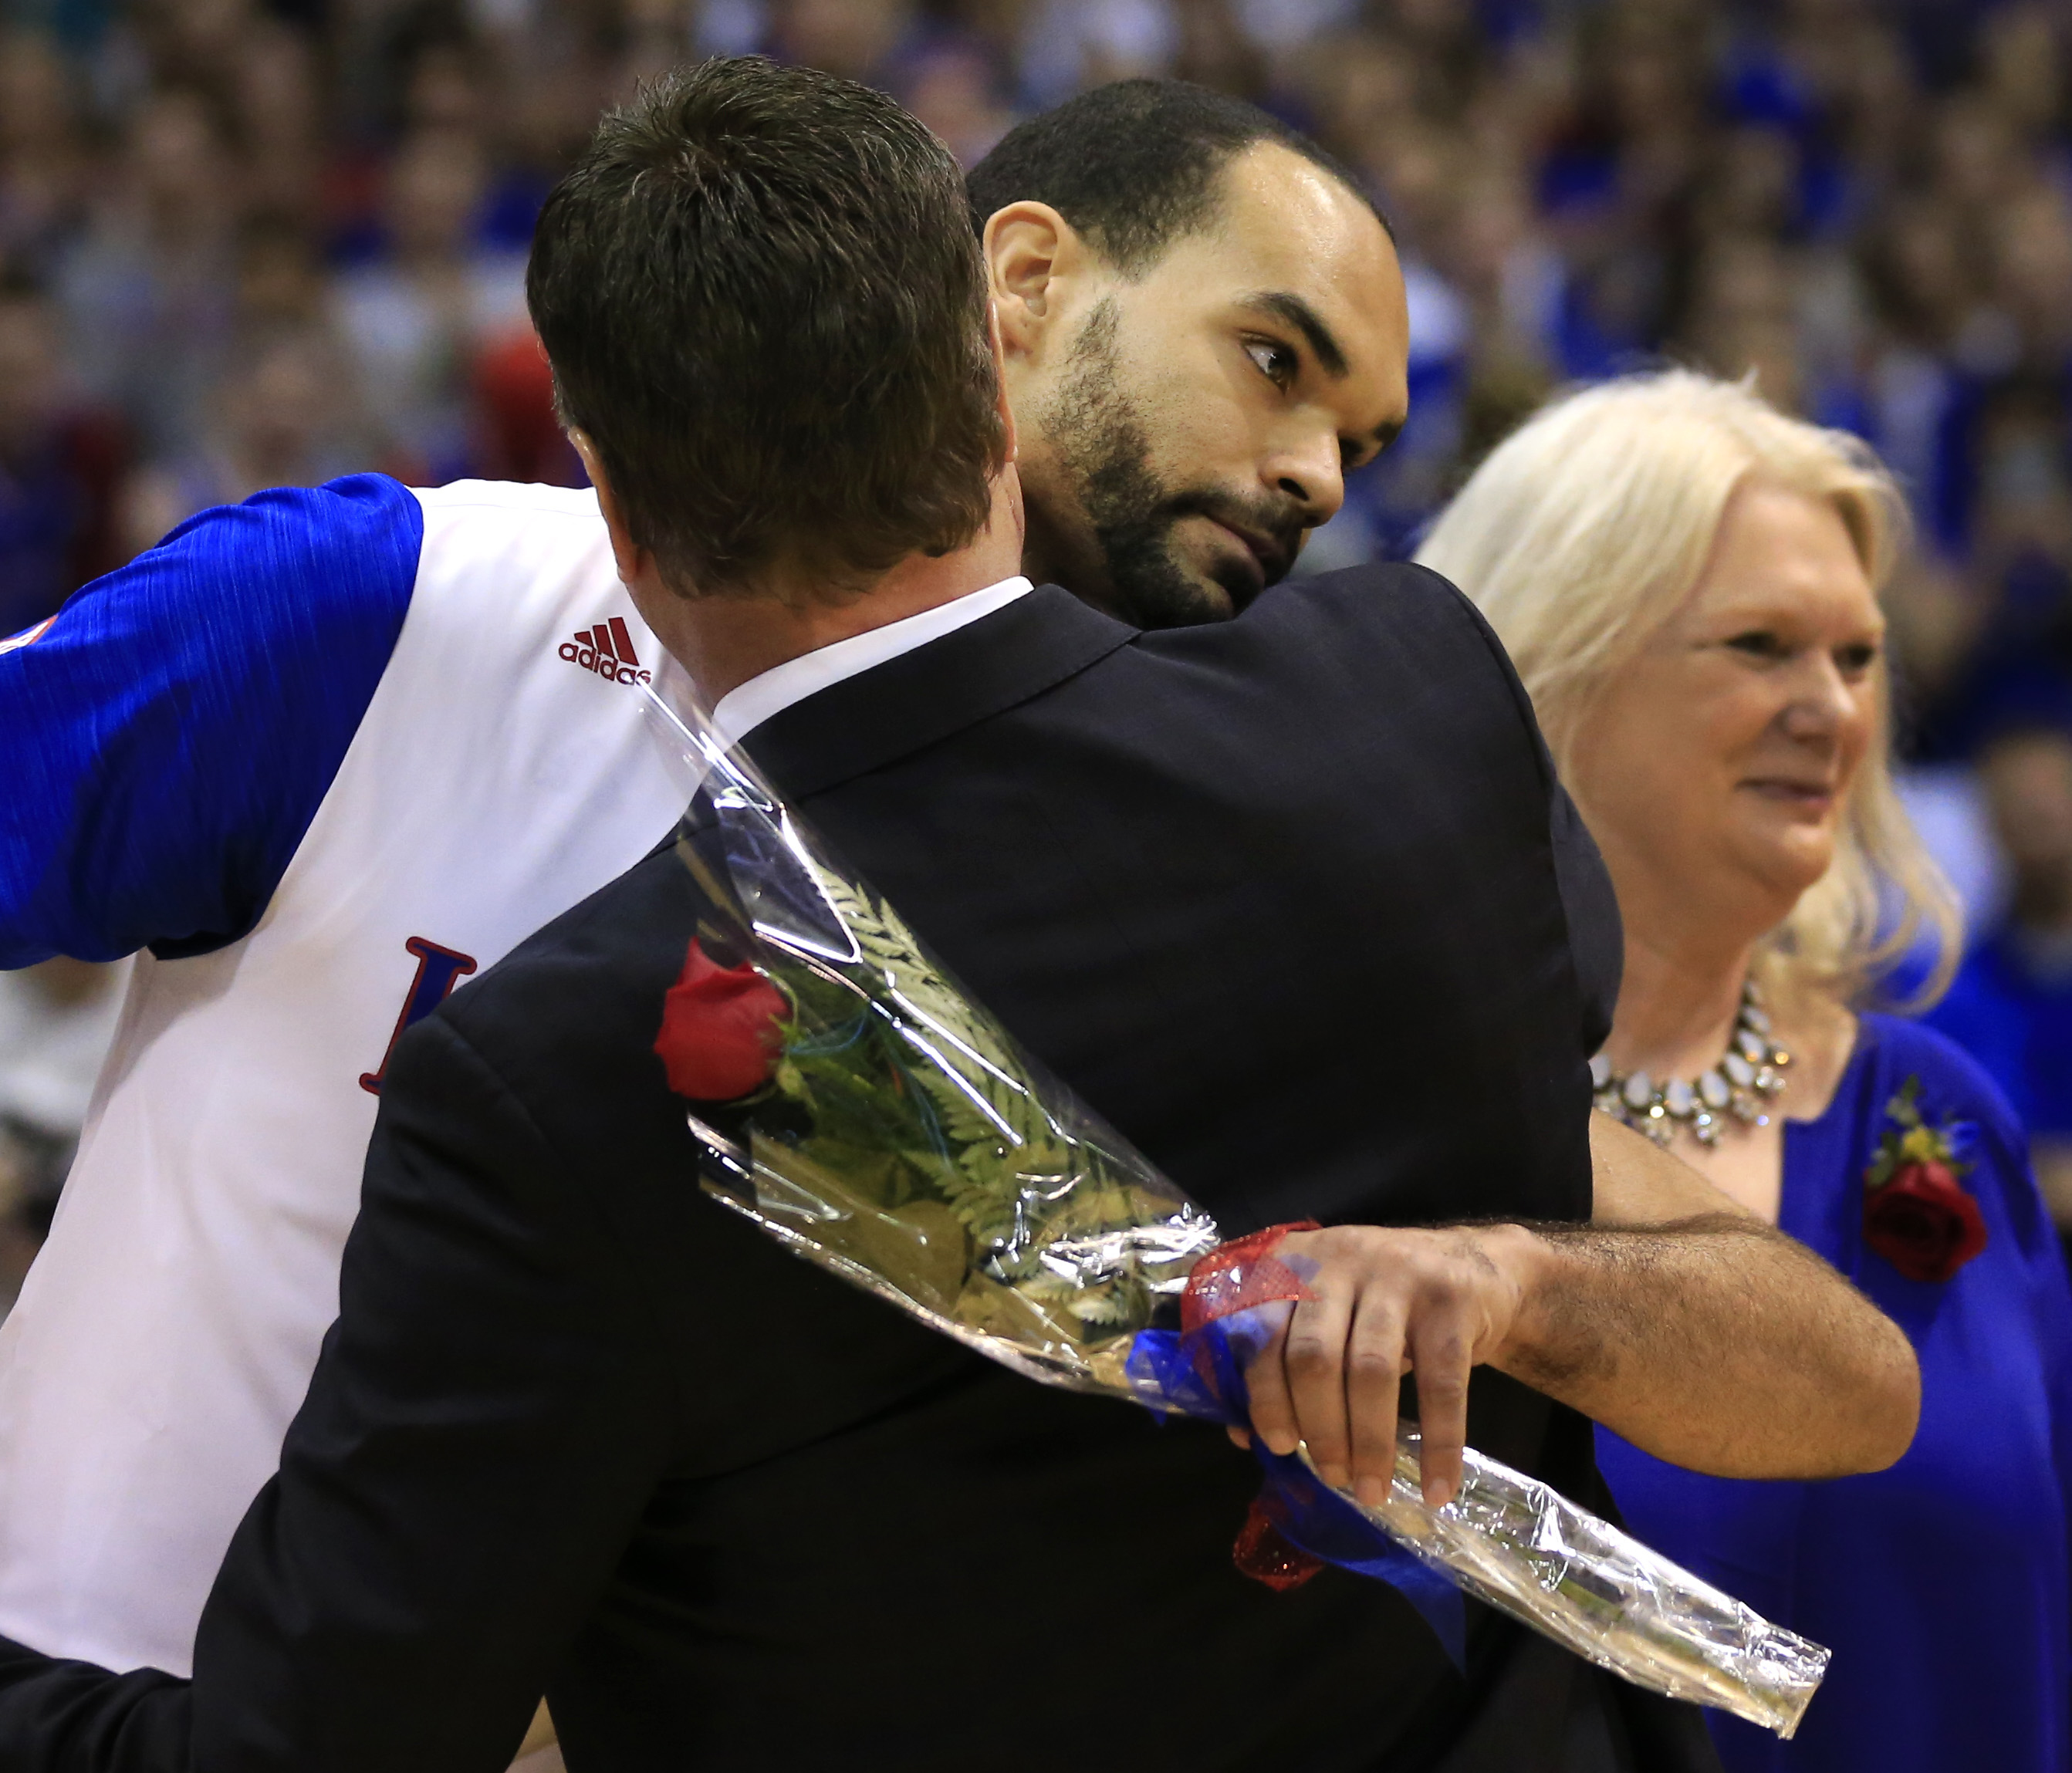 Kansas senior Perry Ellis hugs head coach Bill Self before starting his last regular season NCAA college basketball game in Allen Fieldhouse in Lawrence, Kan., Saturday, March 5, 2016. (AP Photo/Orlin Wagner)